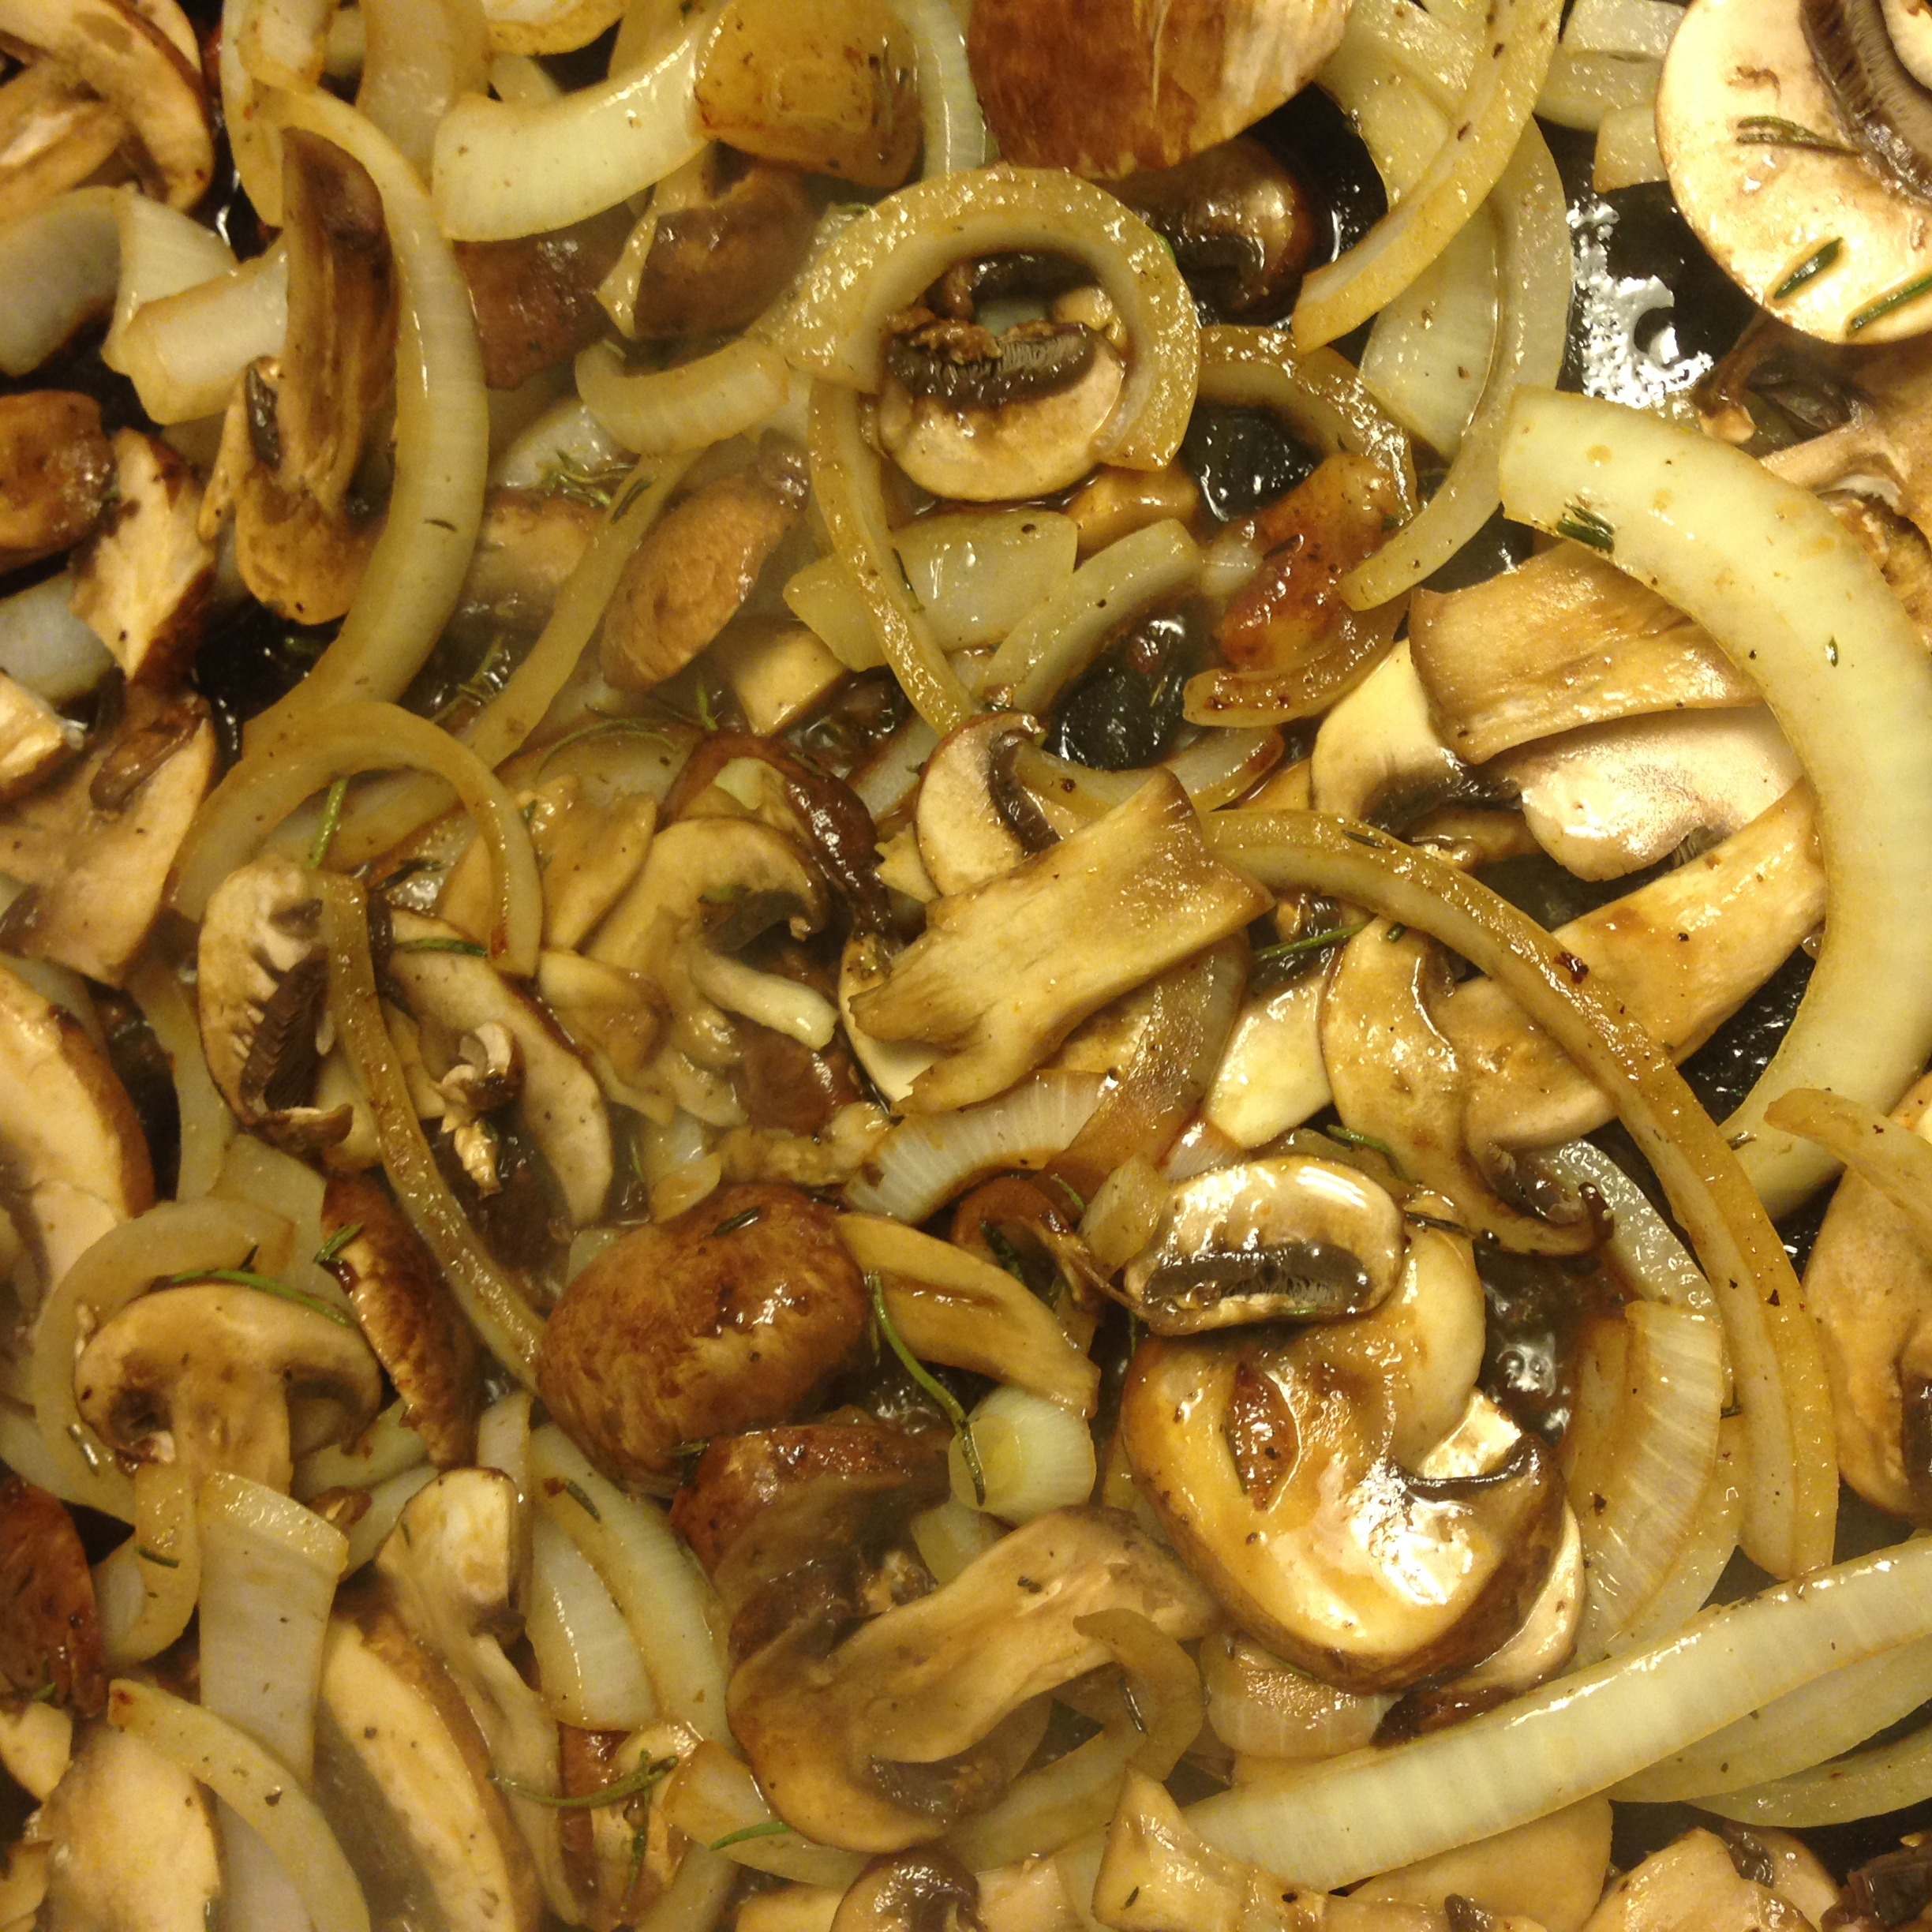 I am convinced mushrooms and onions were created to go along with steaks.  The sweetness of the onion and earthyness of the mushroom get along so well with the rich beefy flavor of steak.